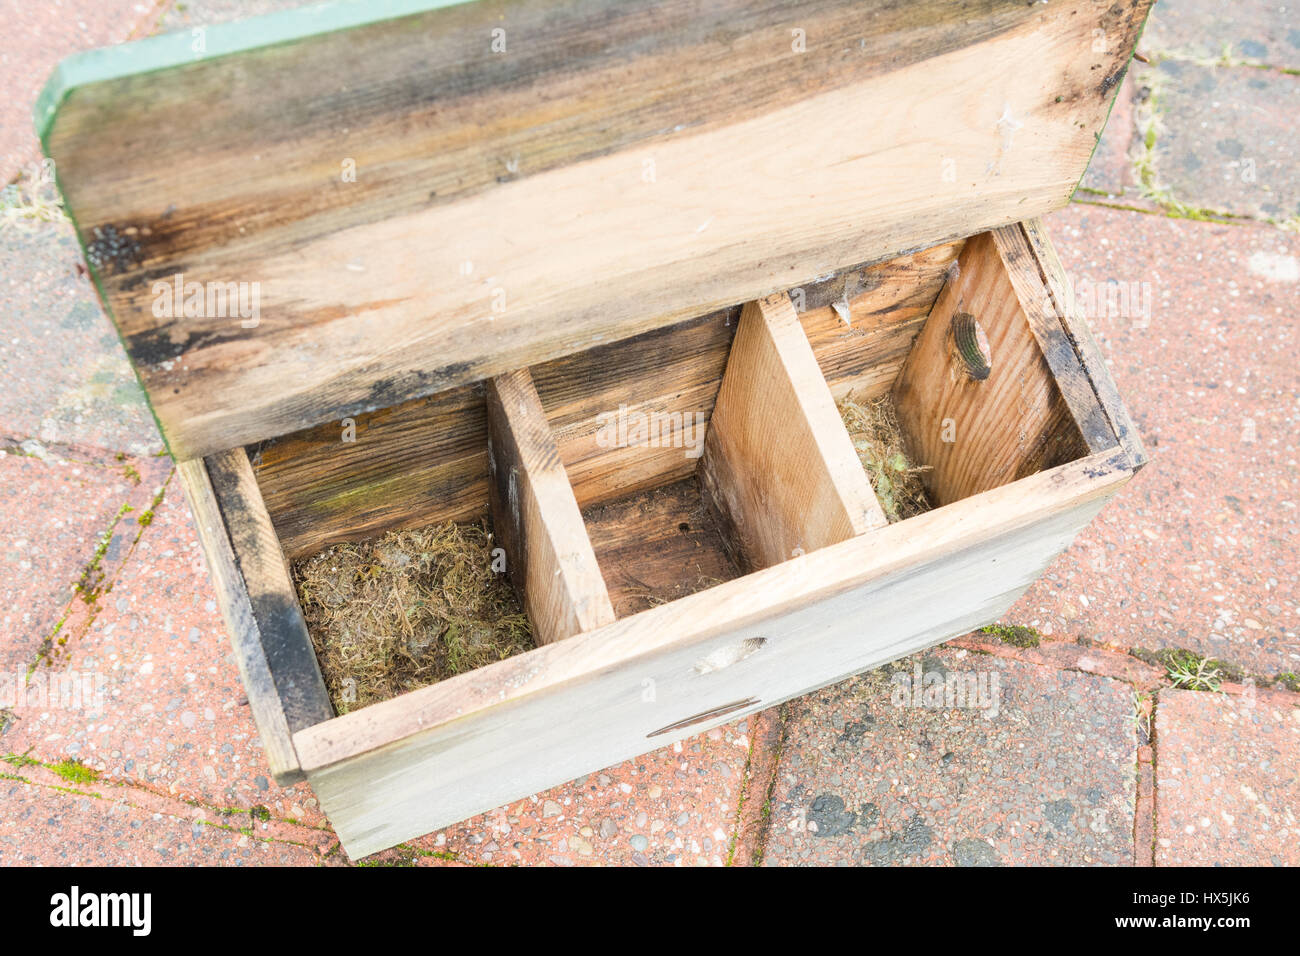 bird box terrace for sparrows ready for cleaning out old nesting material - Stock Image